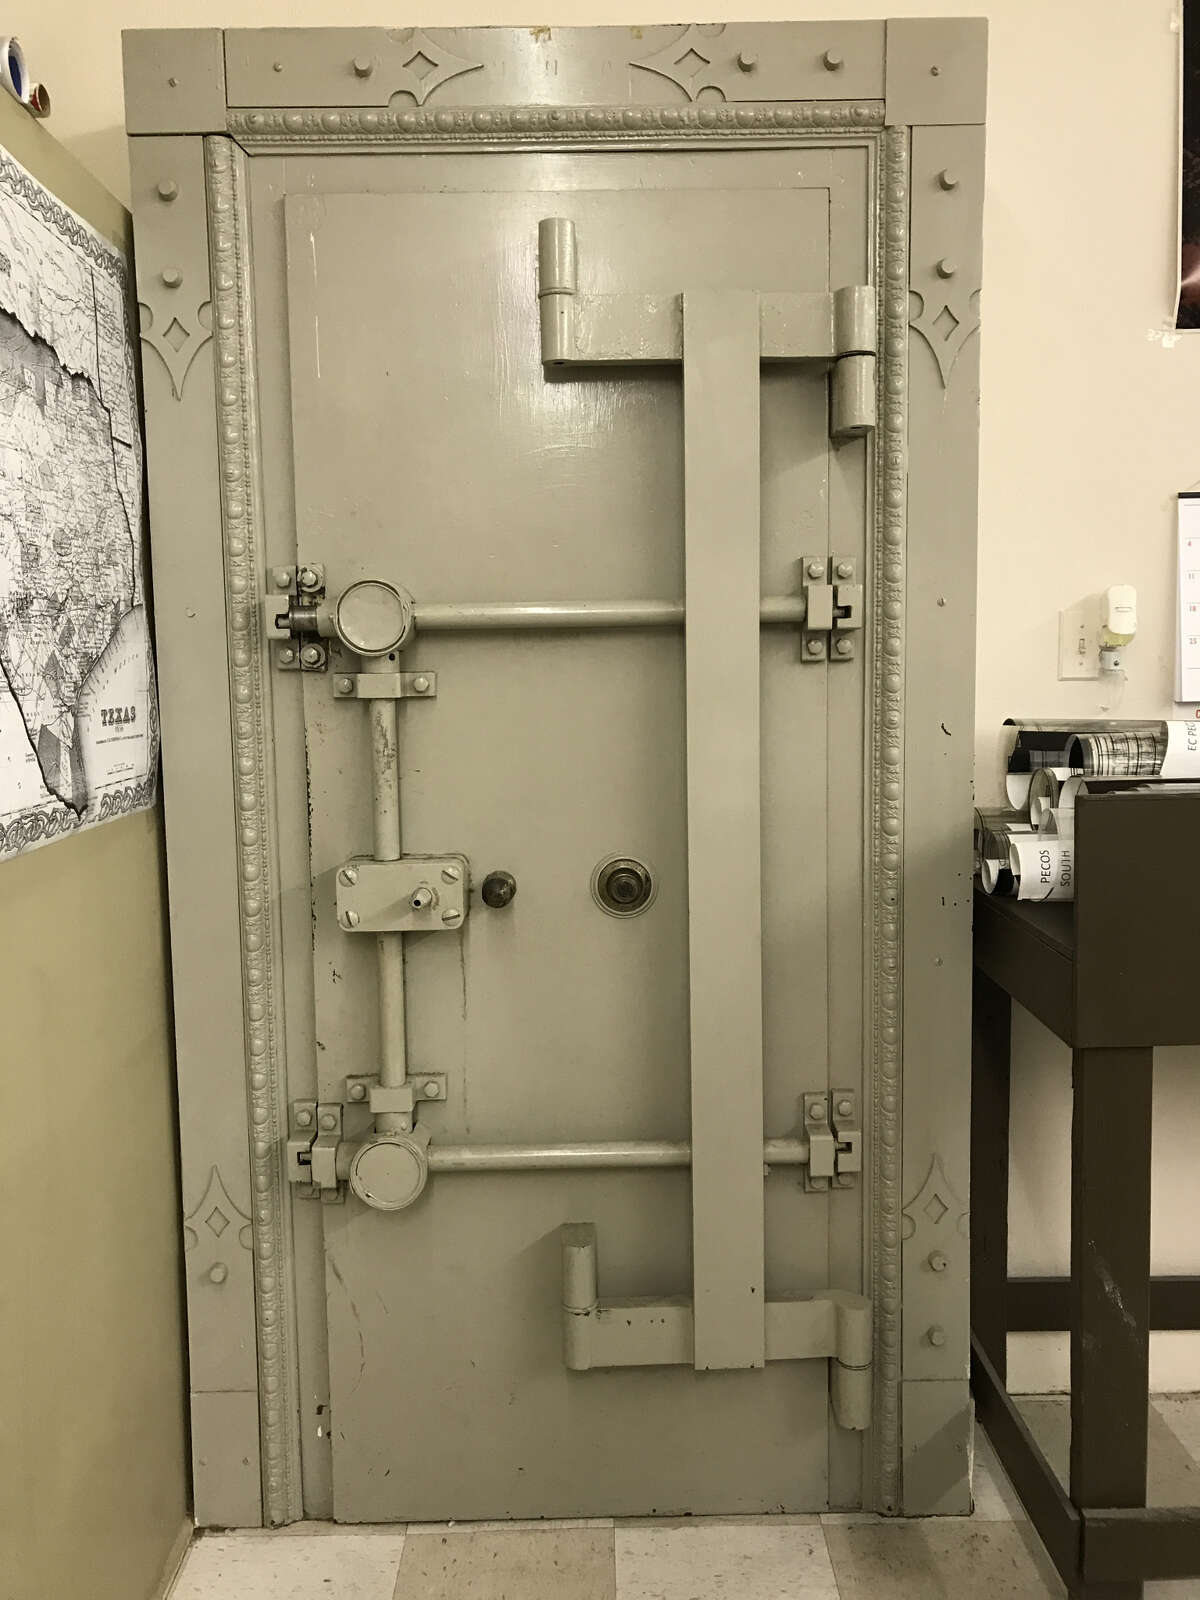 Midland Map Company's vault contains seven decades worth of maps for oilfield leases, producing zones and other useful information used by oil companies, services companies and landmen. NEXT: See the best performing companies in the Permian Basin, according to Rystad.